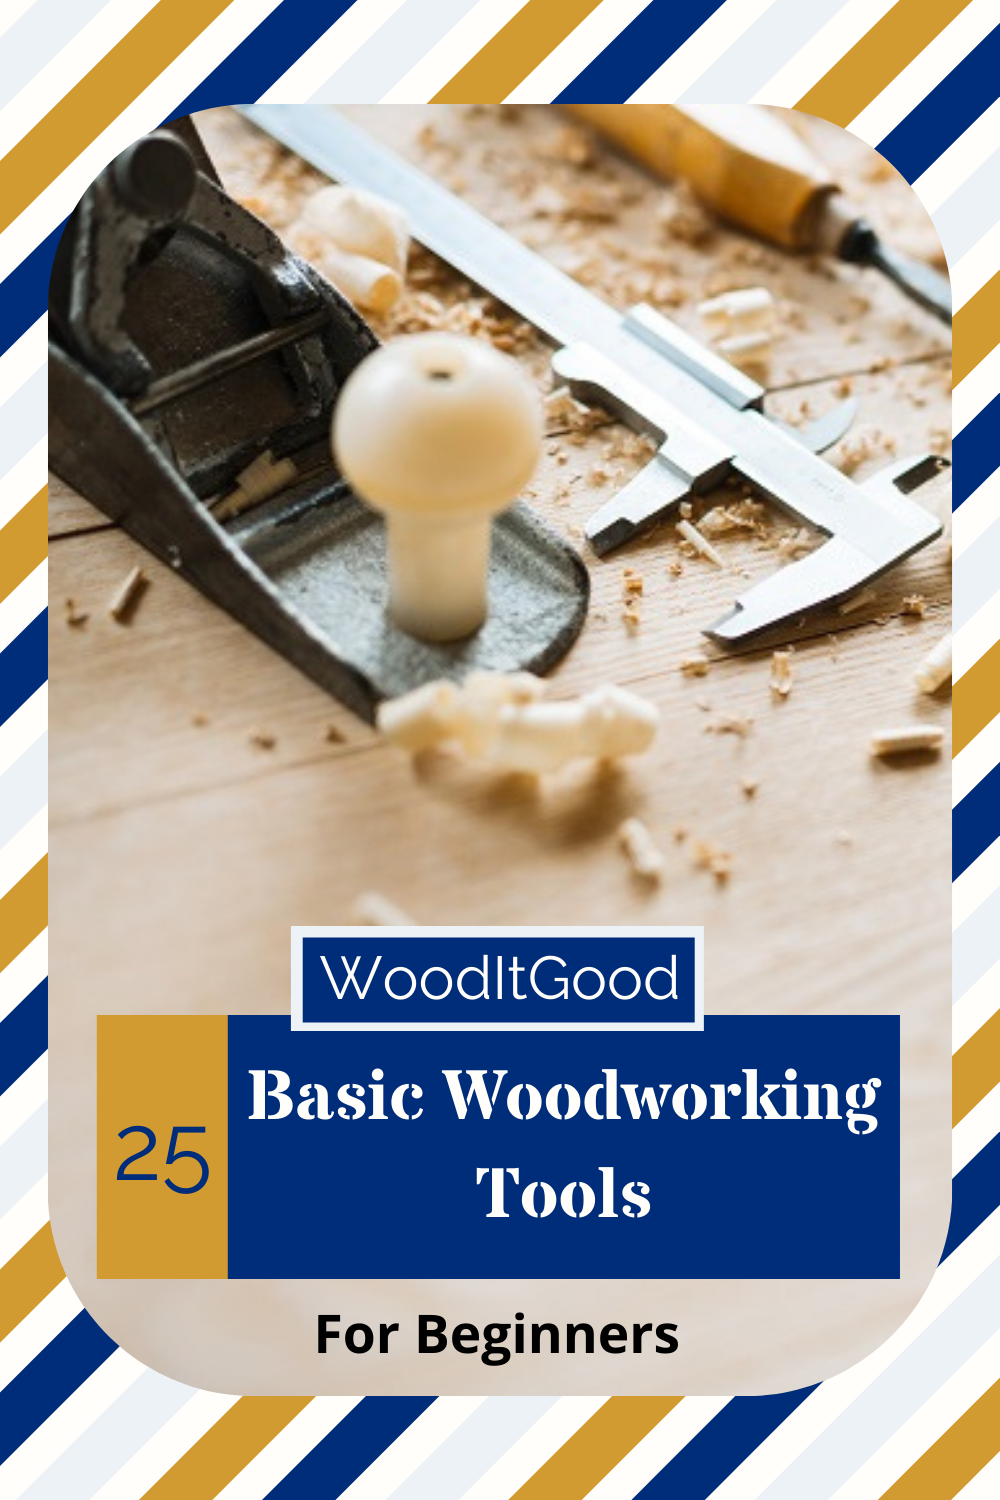 25 Basic Woodworking Tools for Beginners